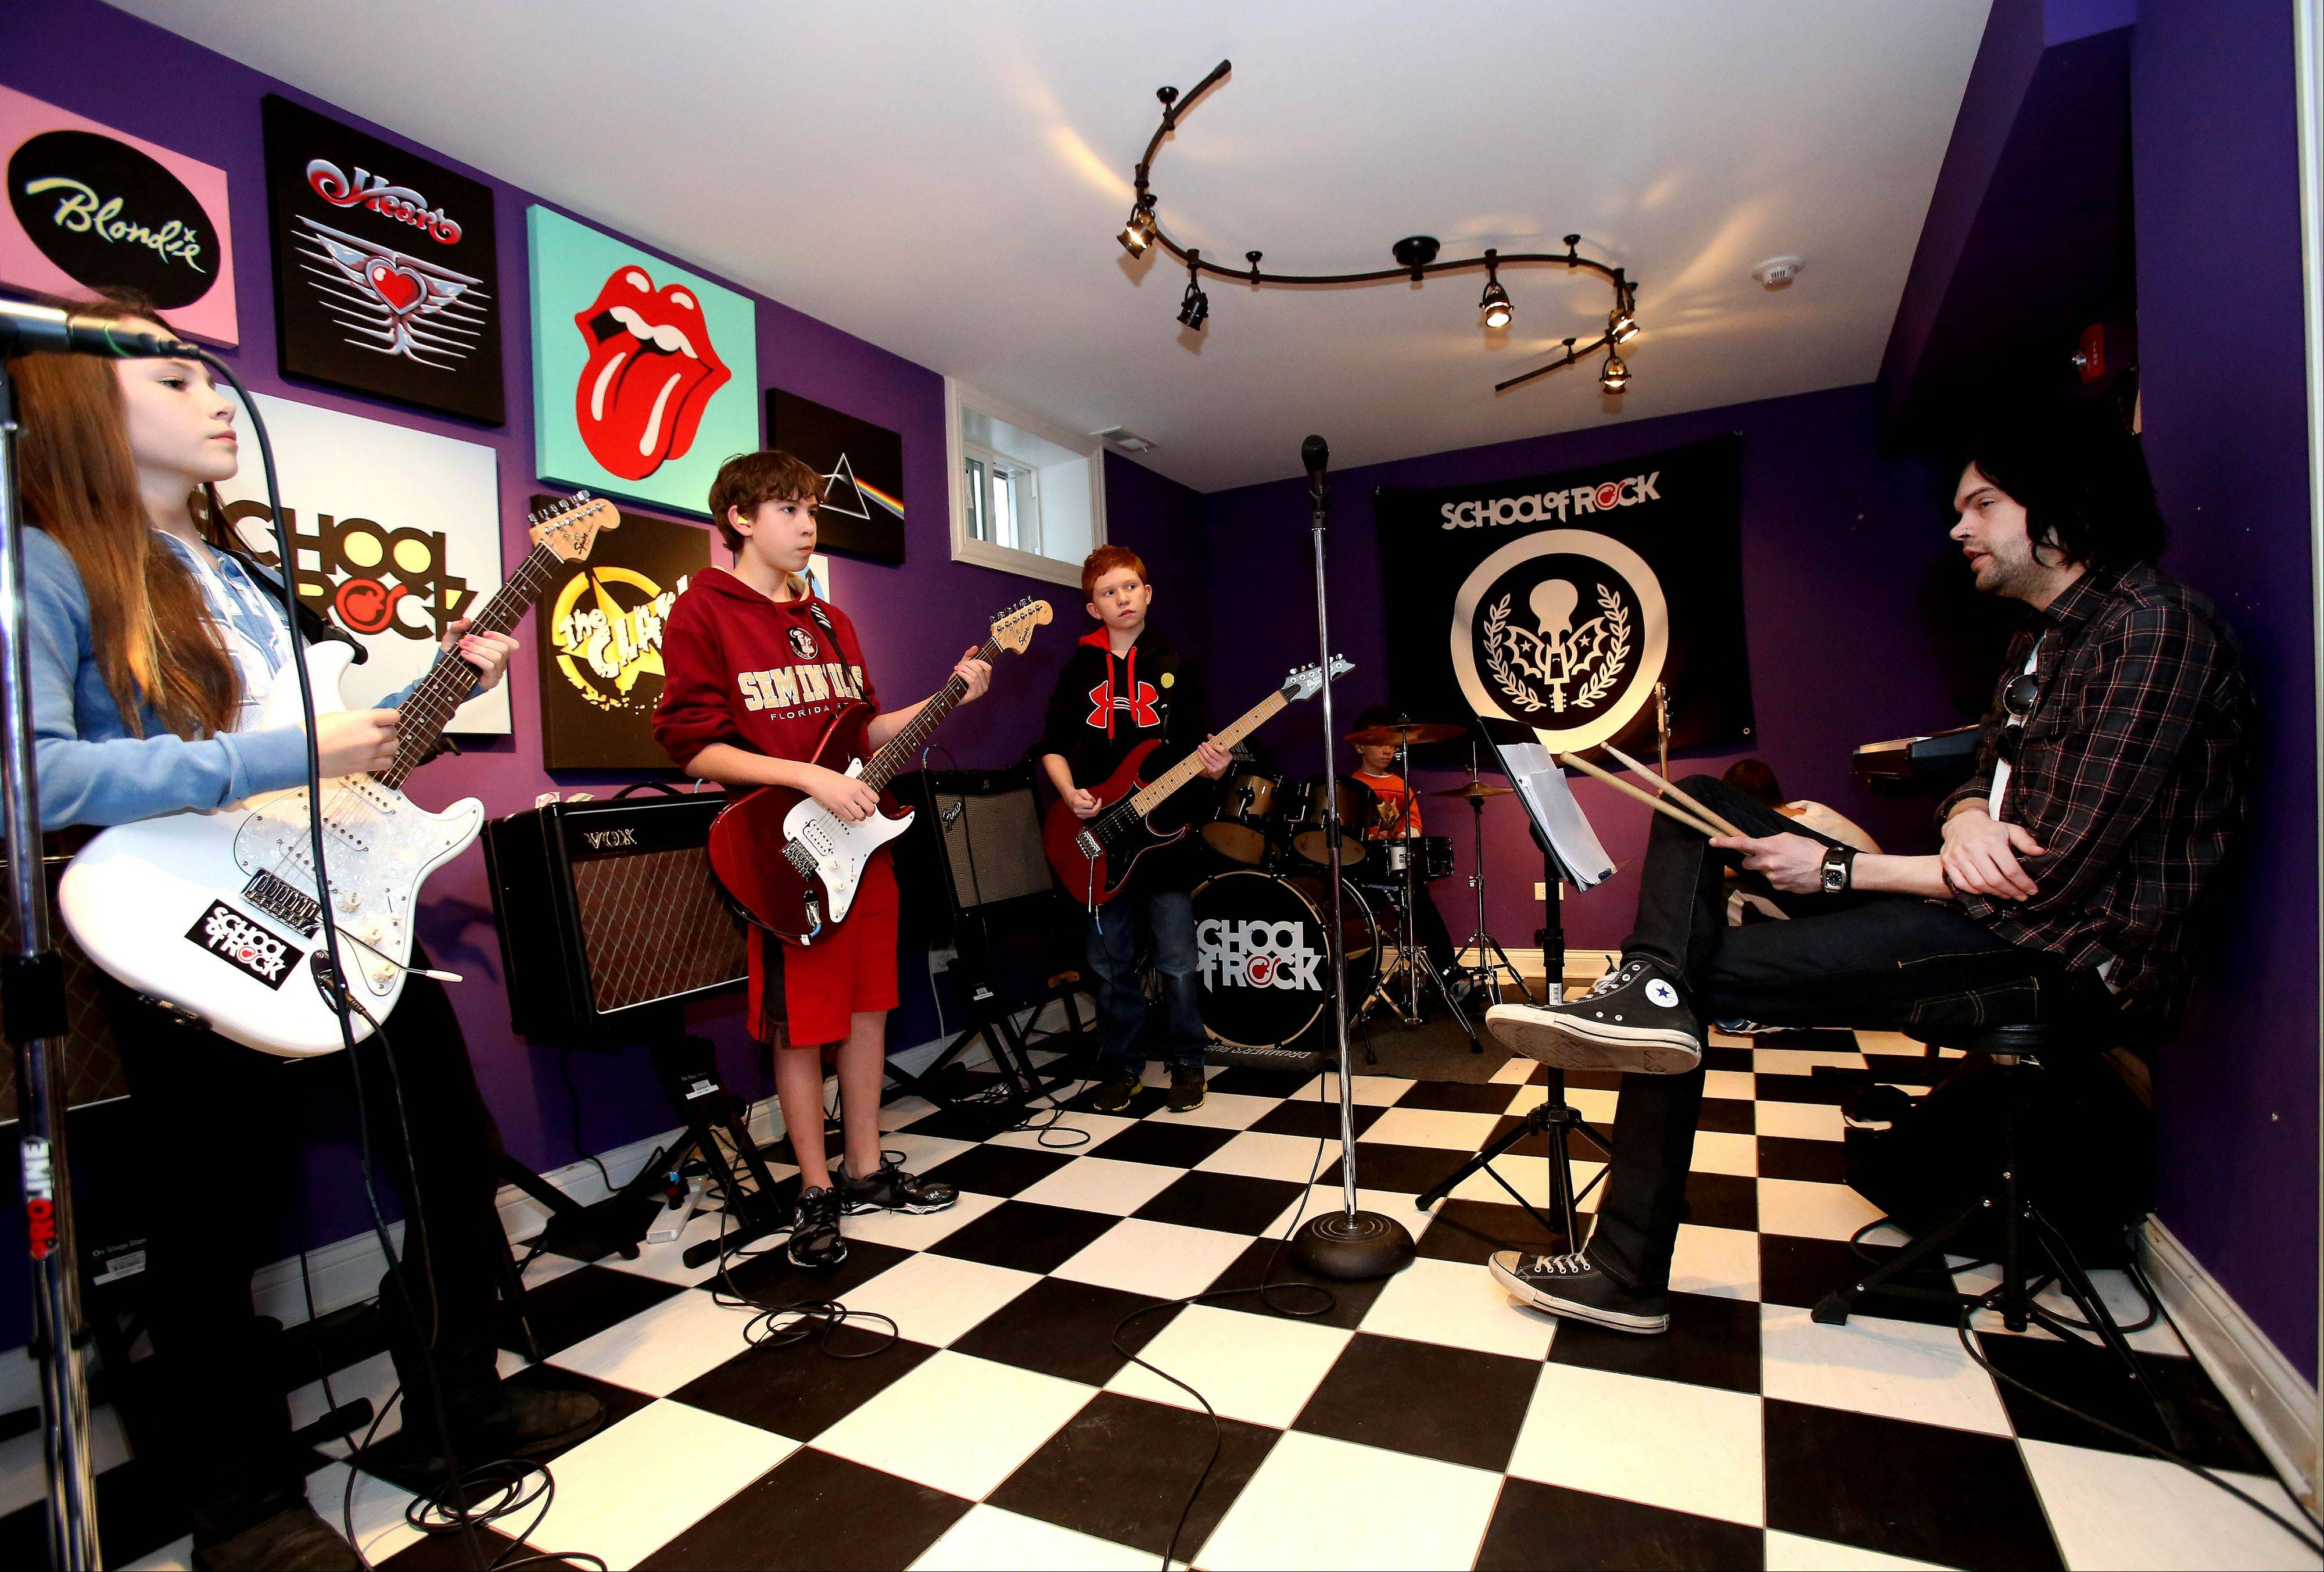 Instructor Adam Krier helps a young band rehearse for a show at the School of Rock in Naperville.